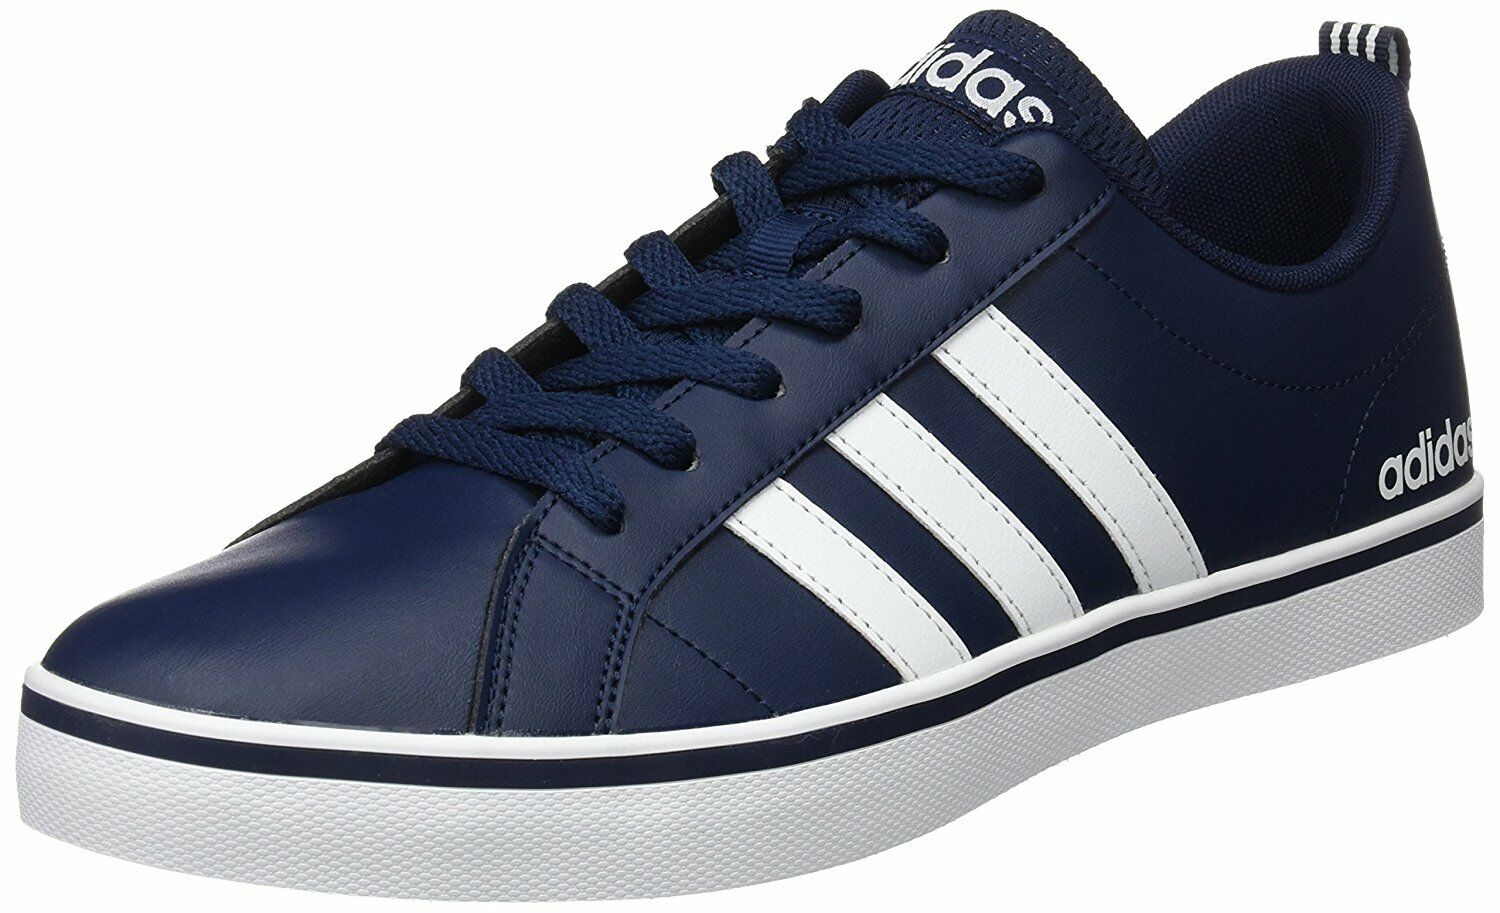 Adidas Men shoes Men Essentials VS Pace Sneakers Stylish Fashion Trainers B74493